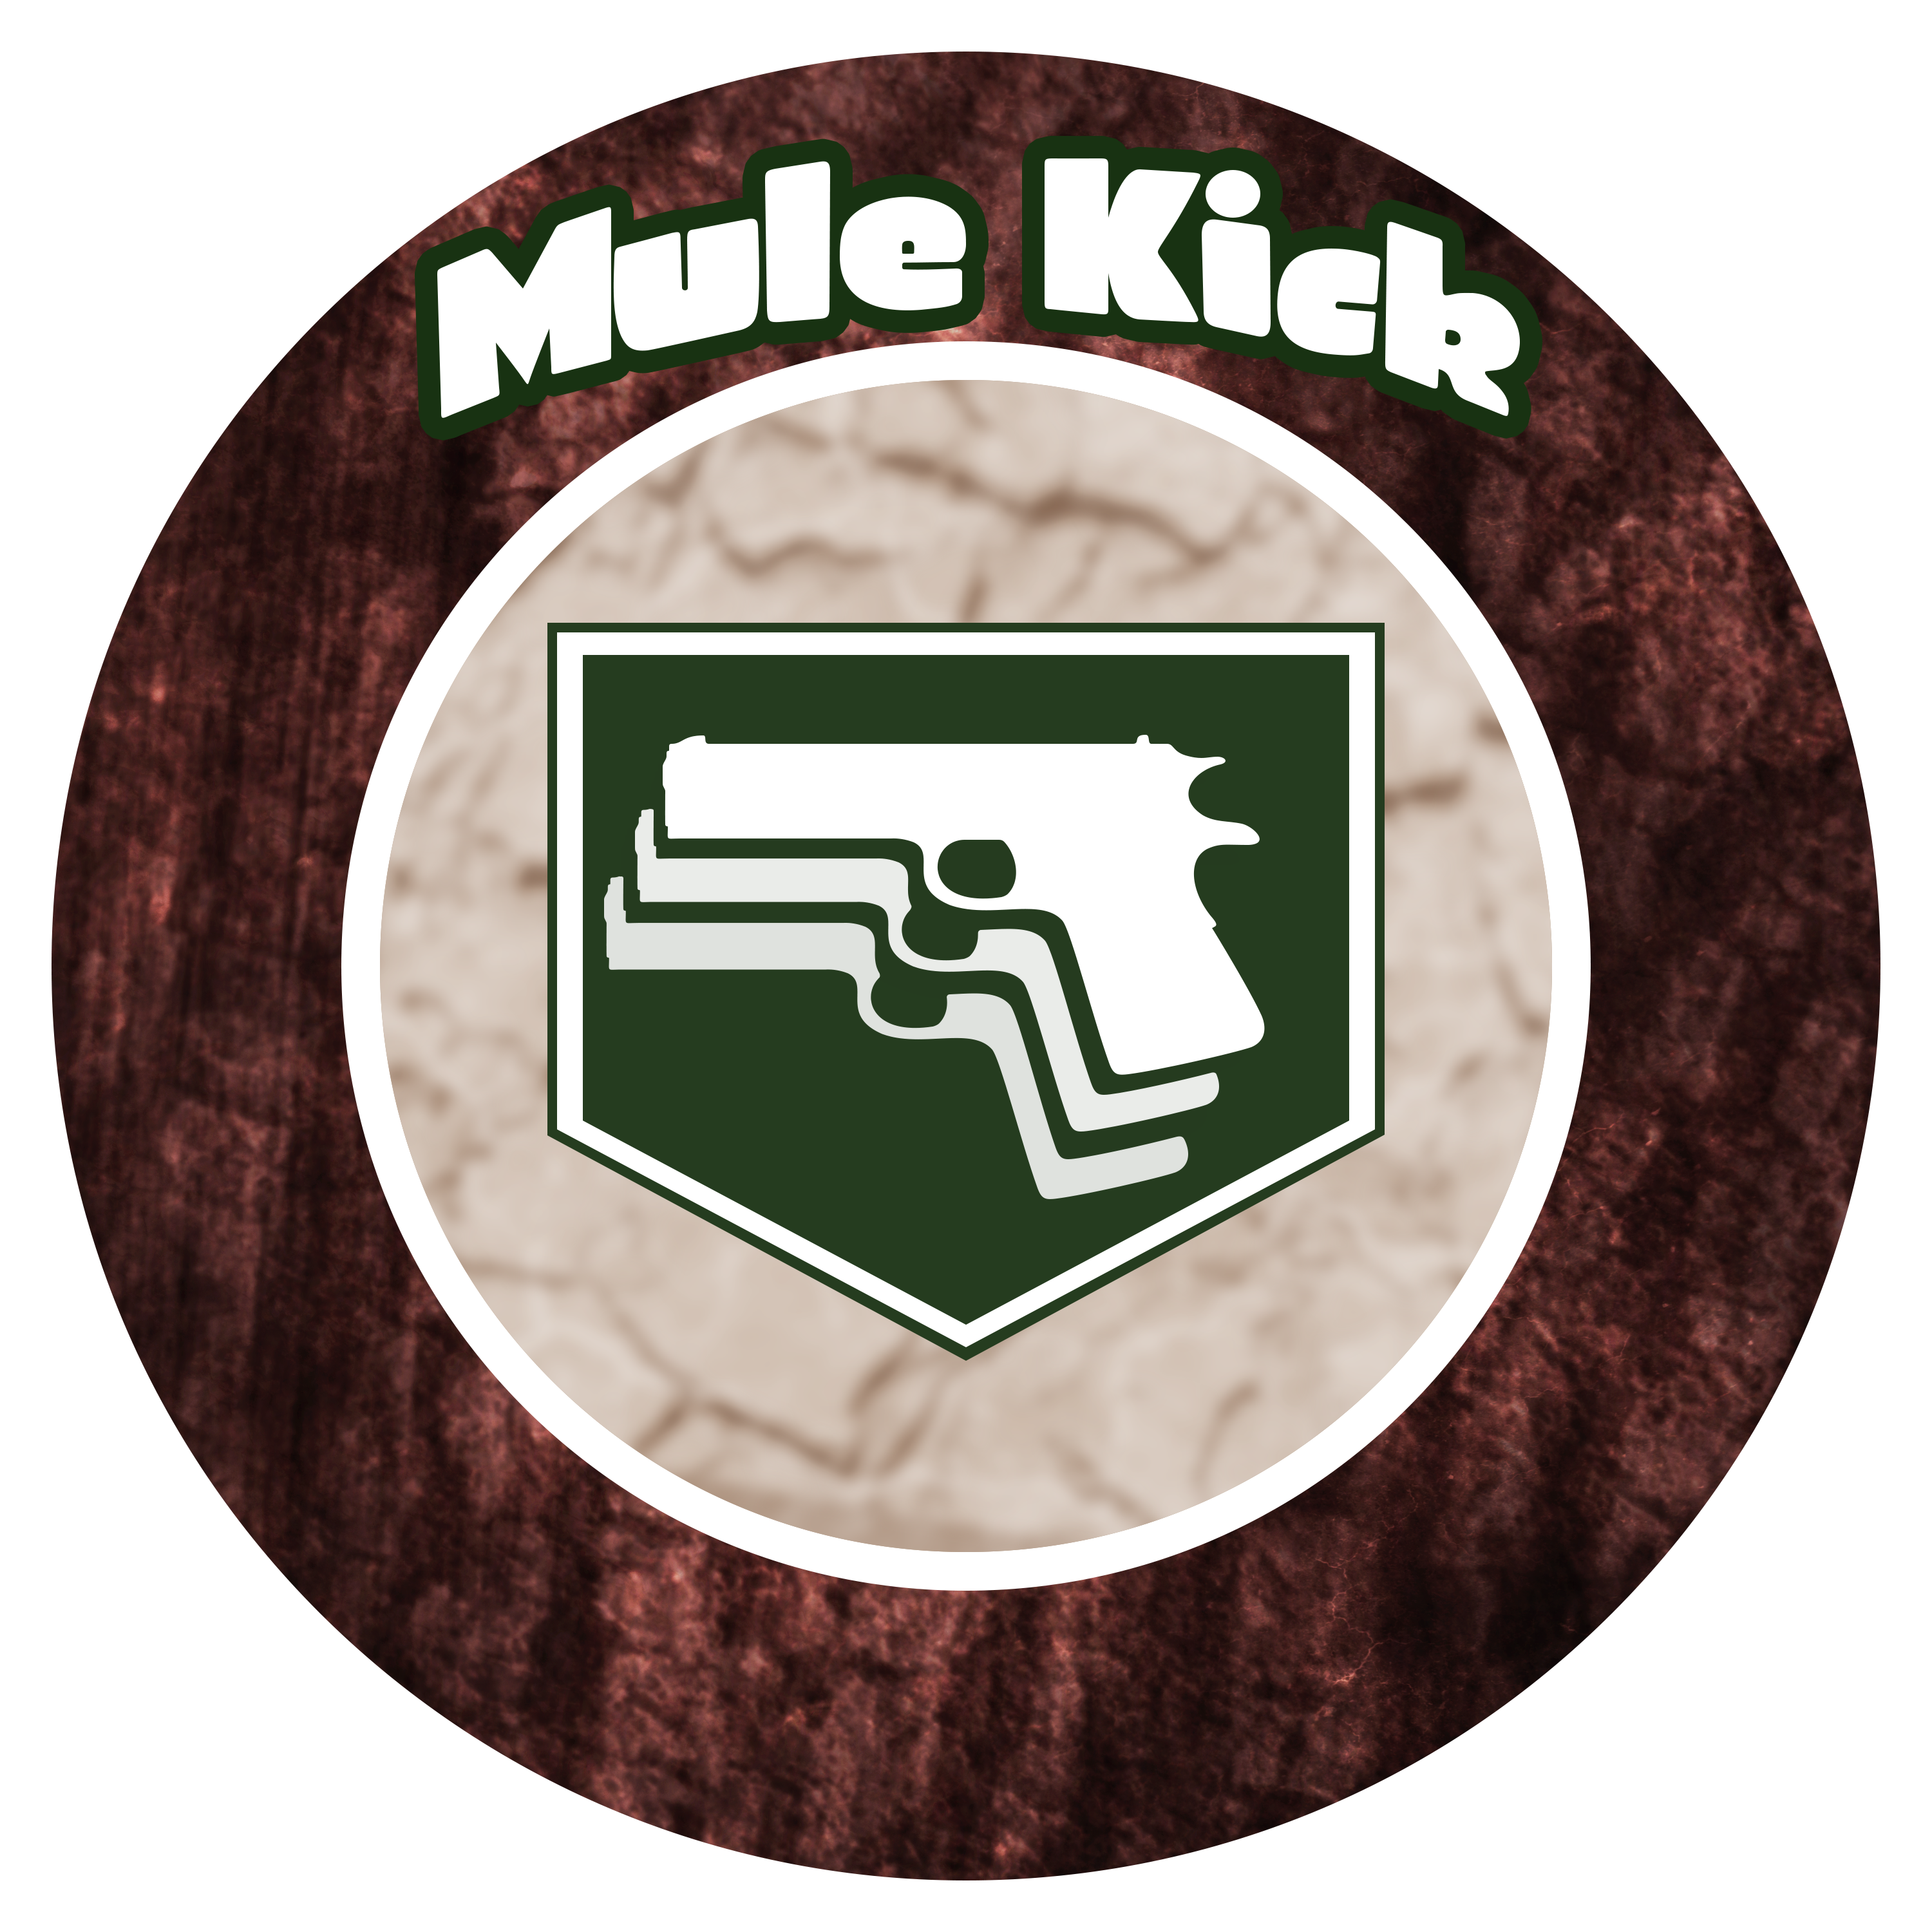 Mule Kick Logo From Treyarch Zombies 3000x3000 Call Of Duty Zombies Call Of Duty Perks Black Ops Zombies